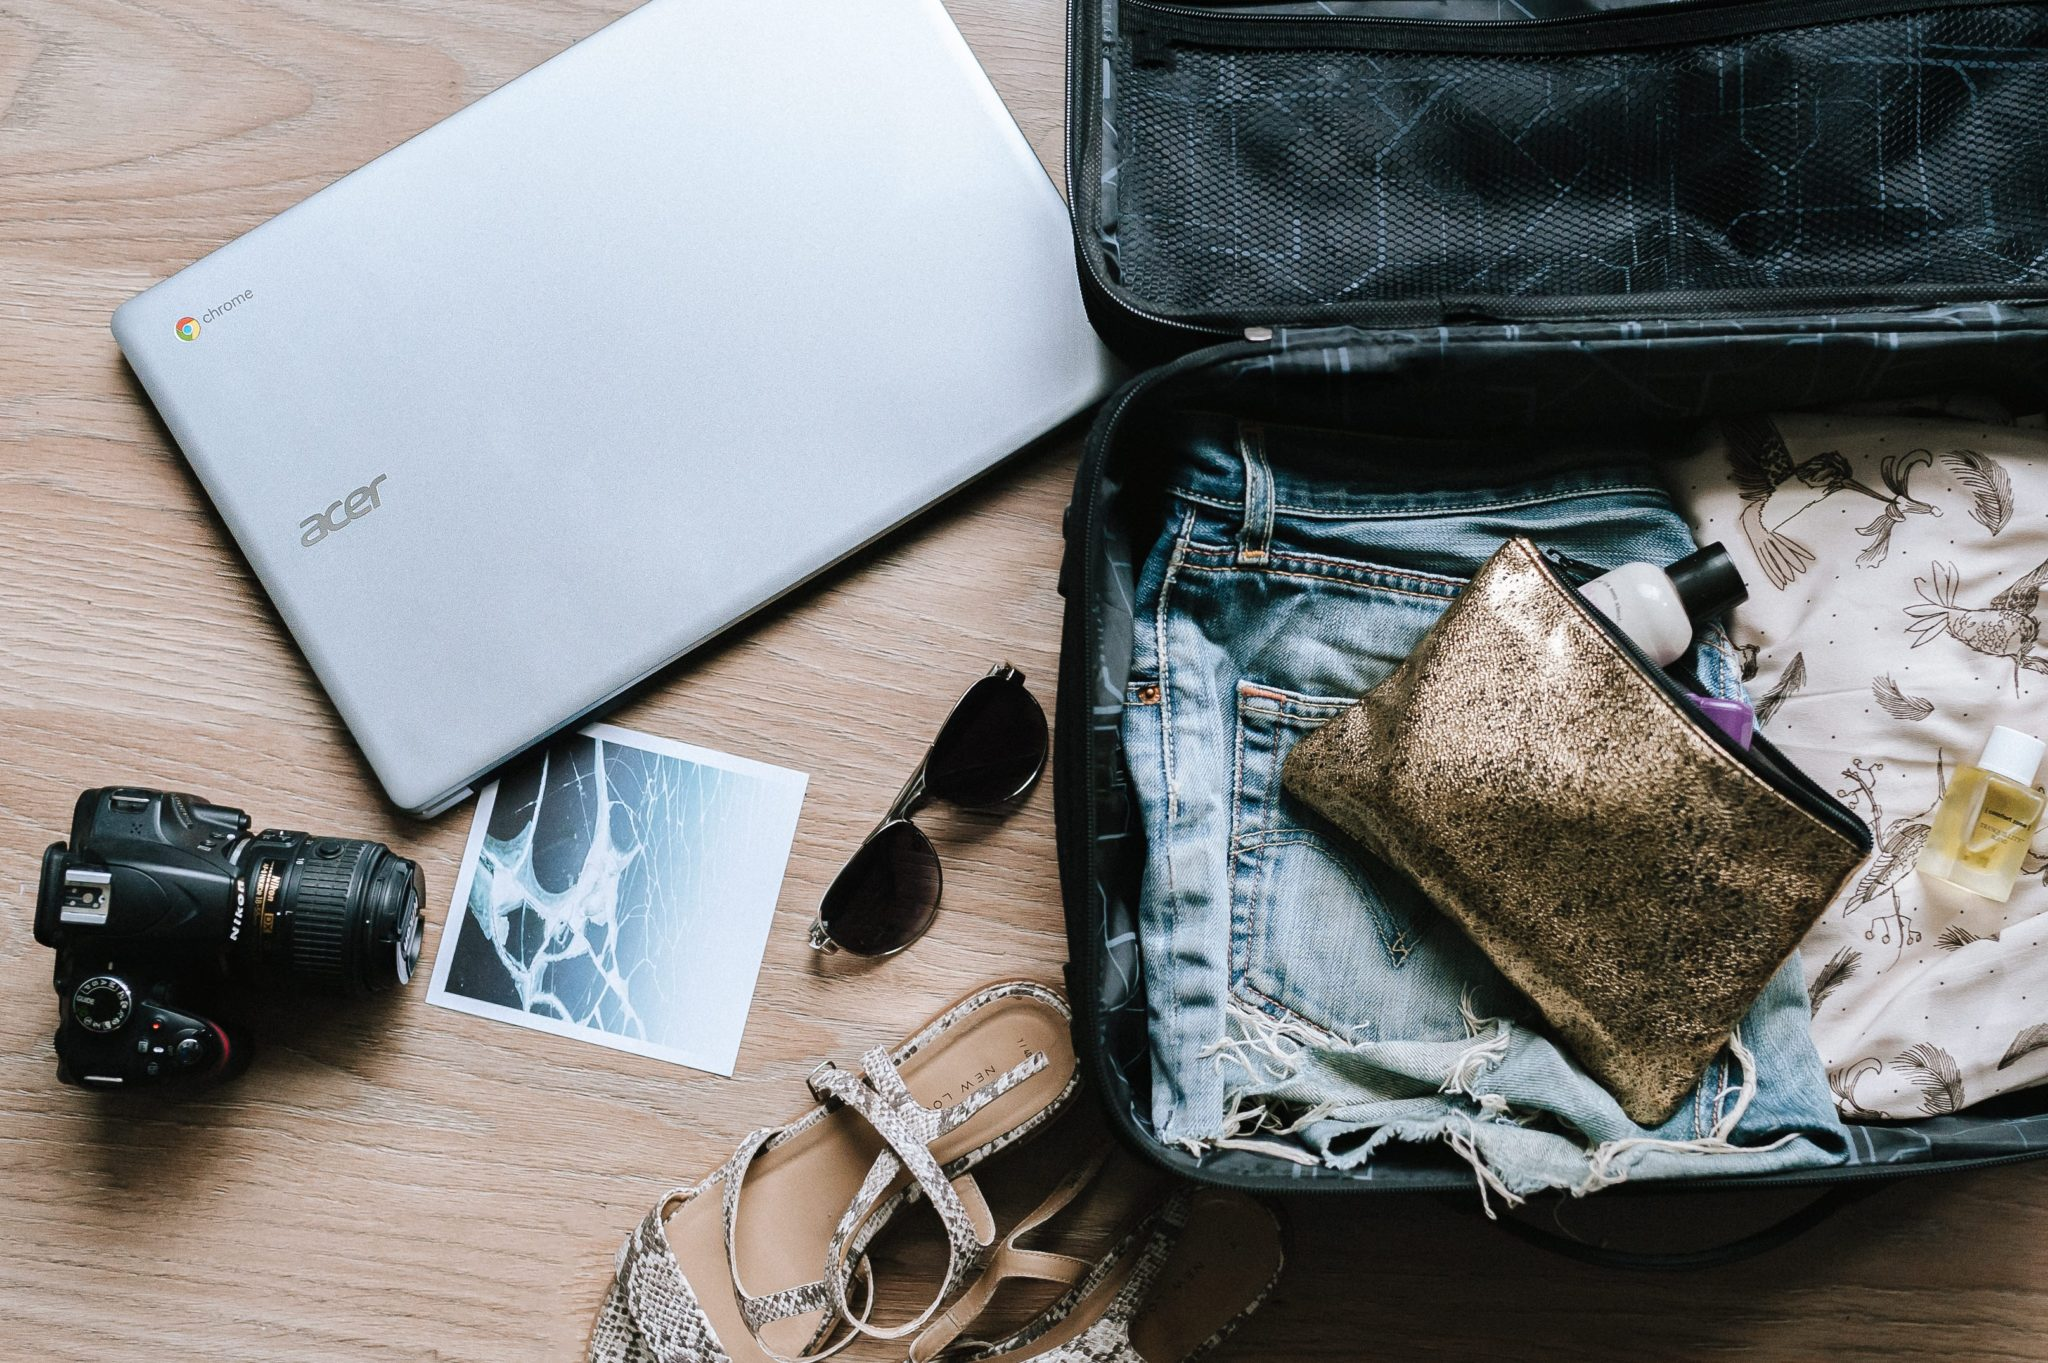 Travel is back. What should be on your post-Covid travel shopping list?